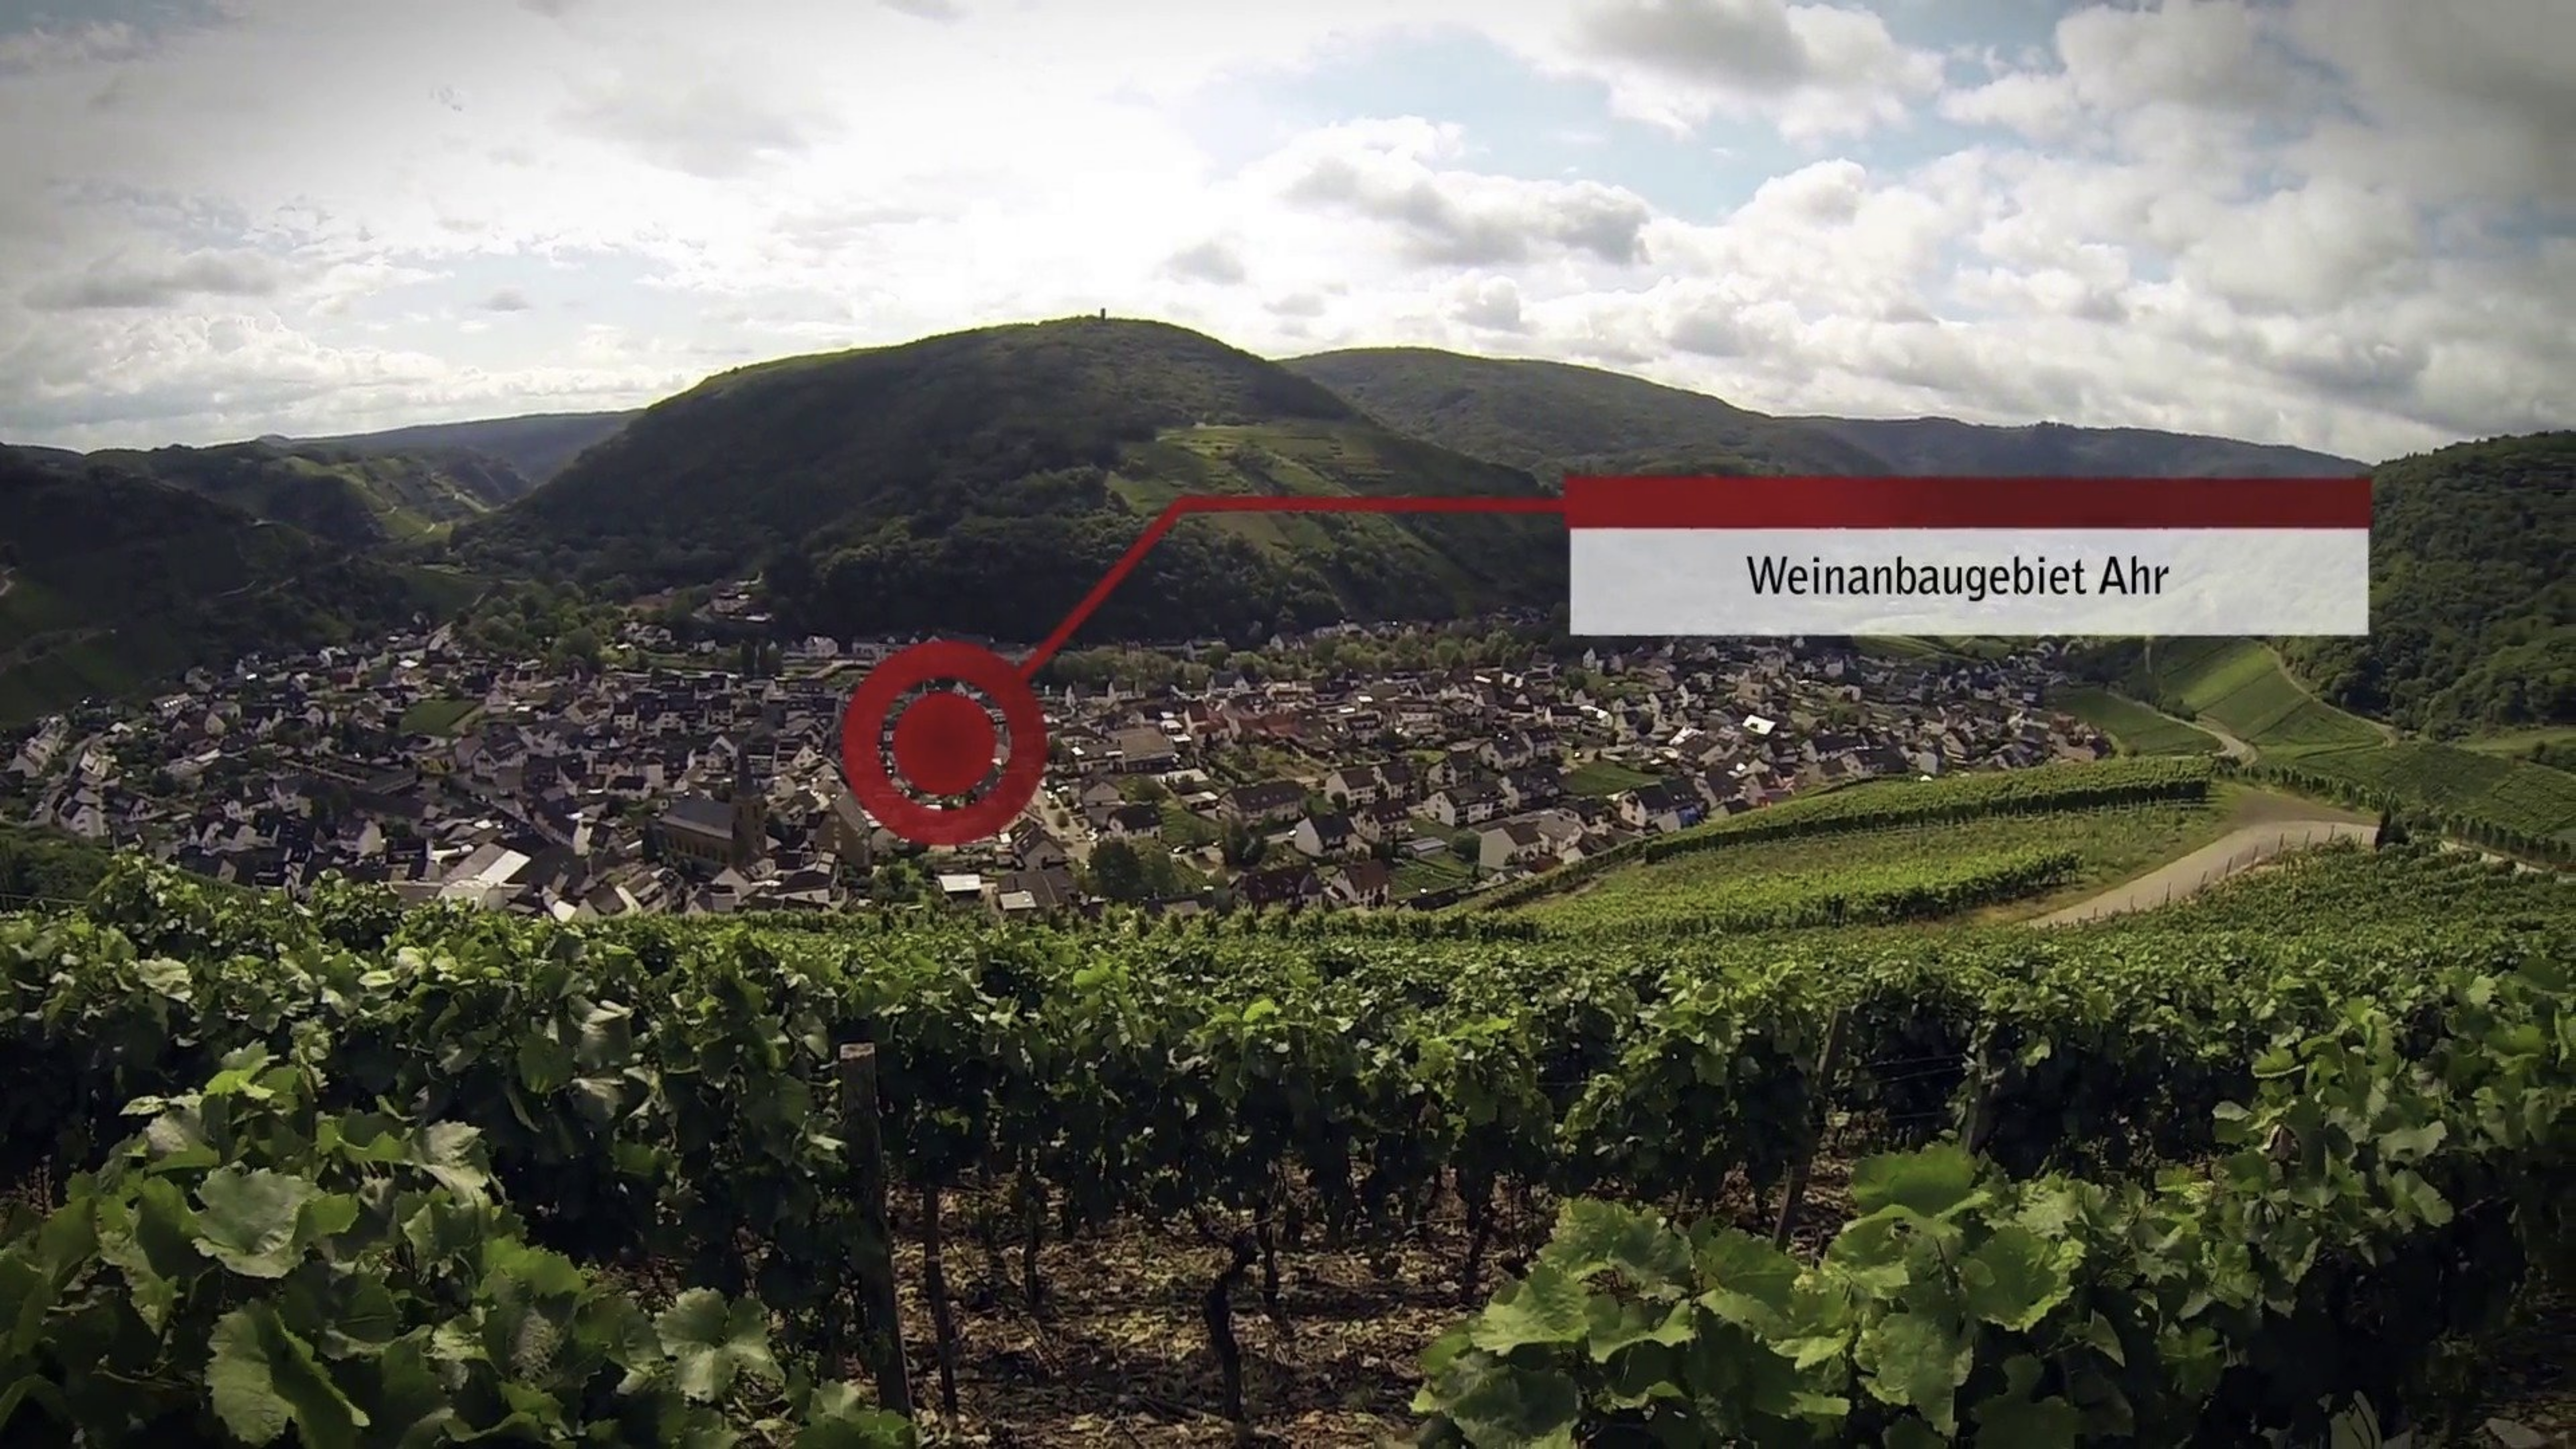 Ahr – One of the smallest wine-growing regions in Germany